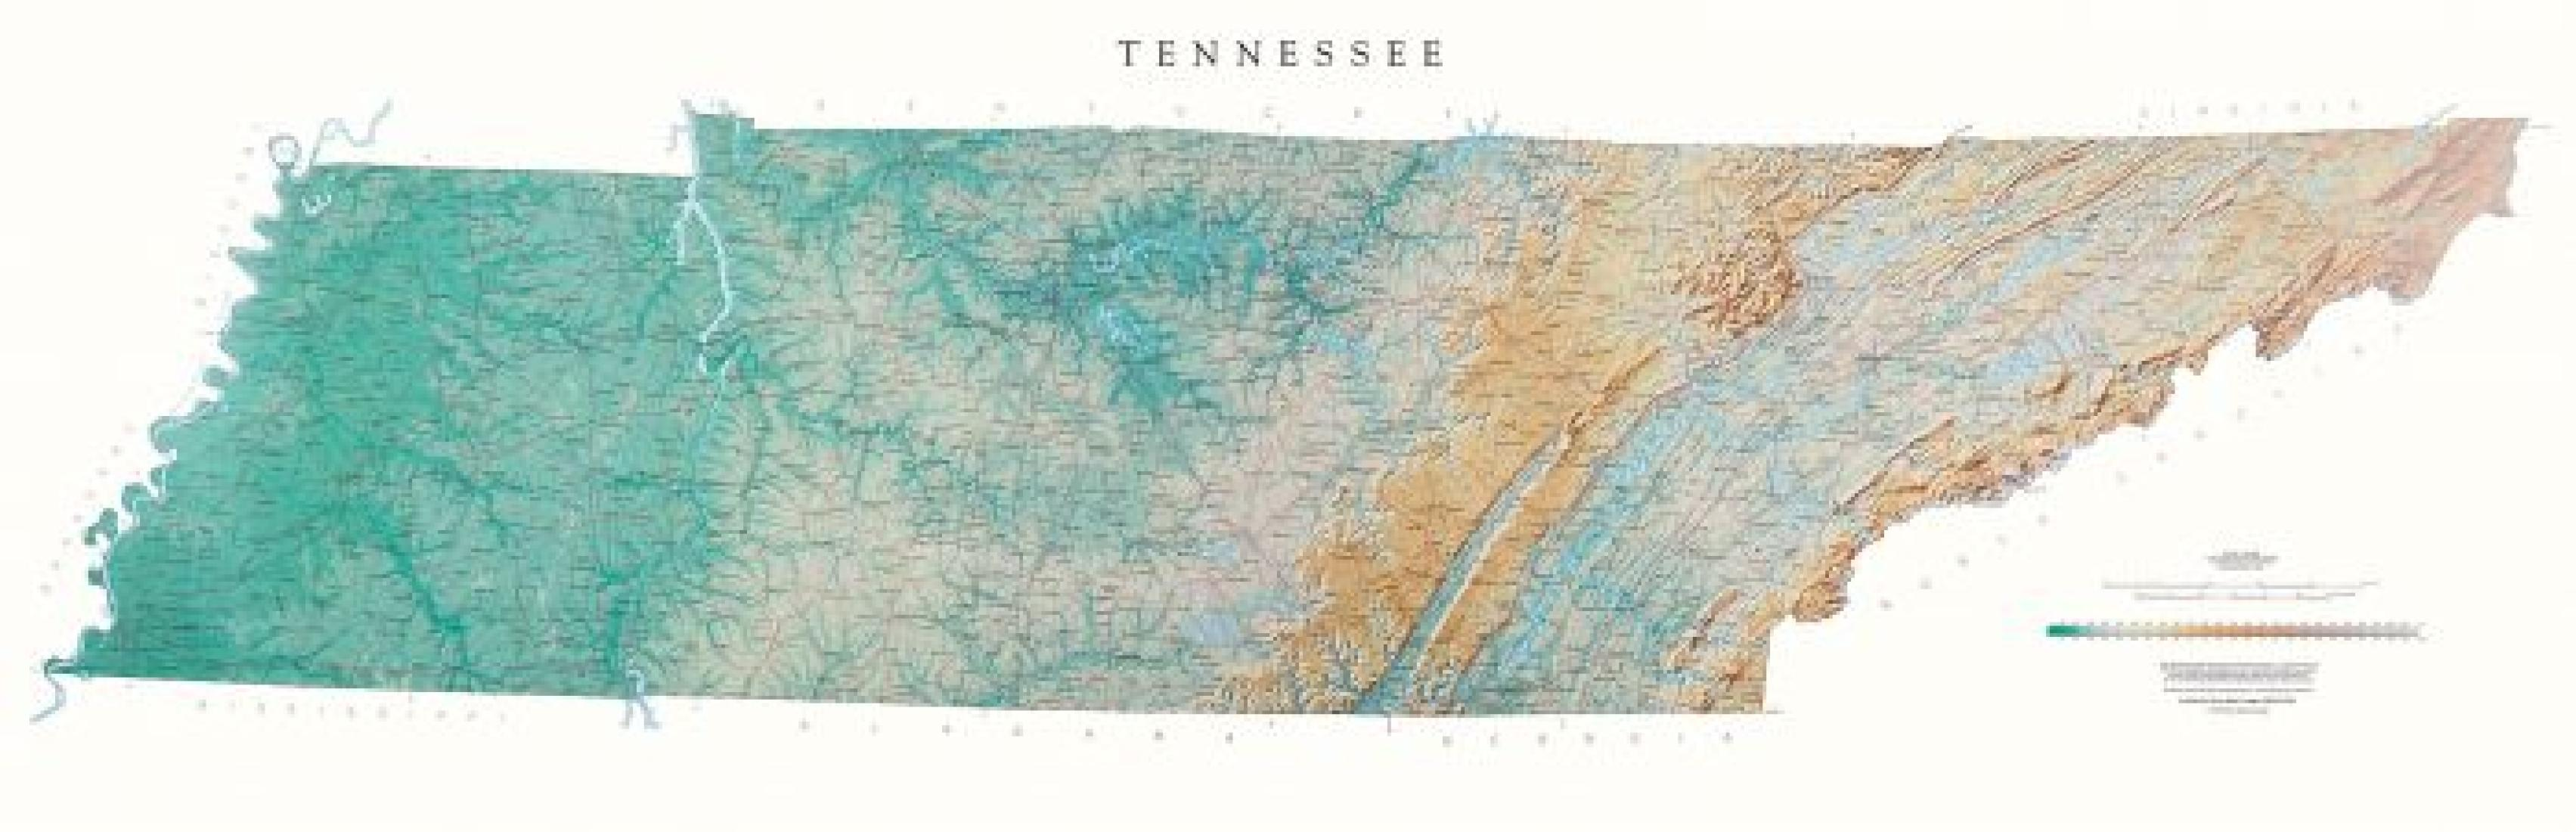 Tennessee, Physical Wall Map by Raven Maps